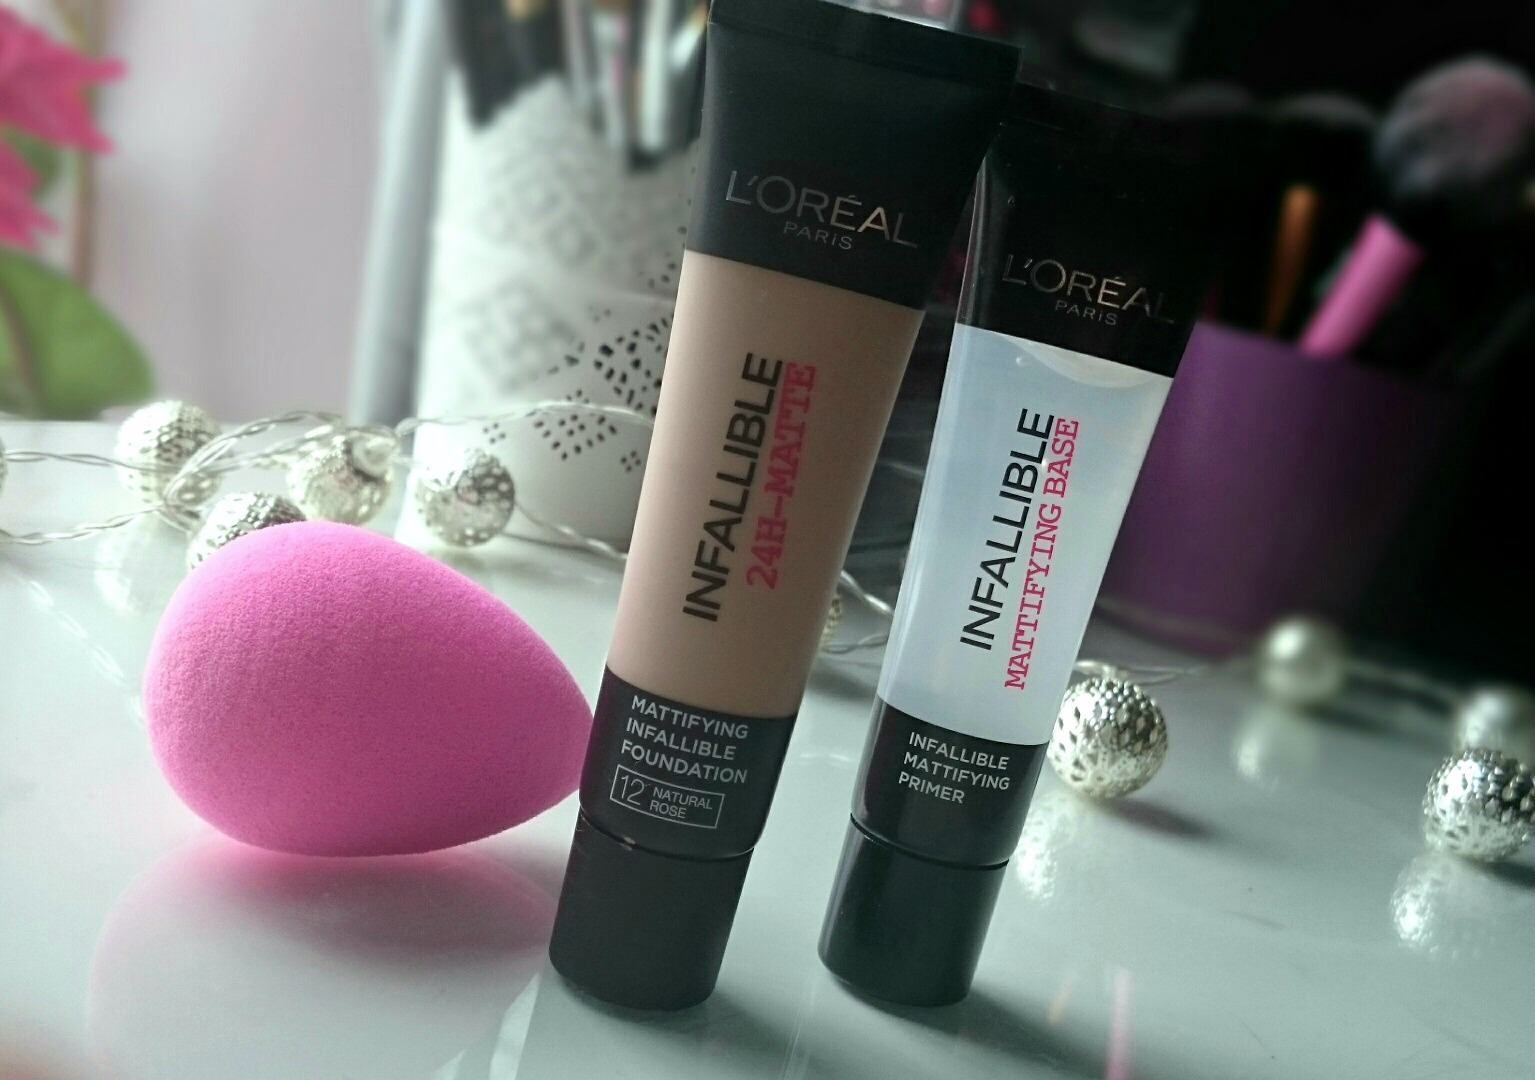 L'Oreal Infallible mattifying Foundation